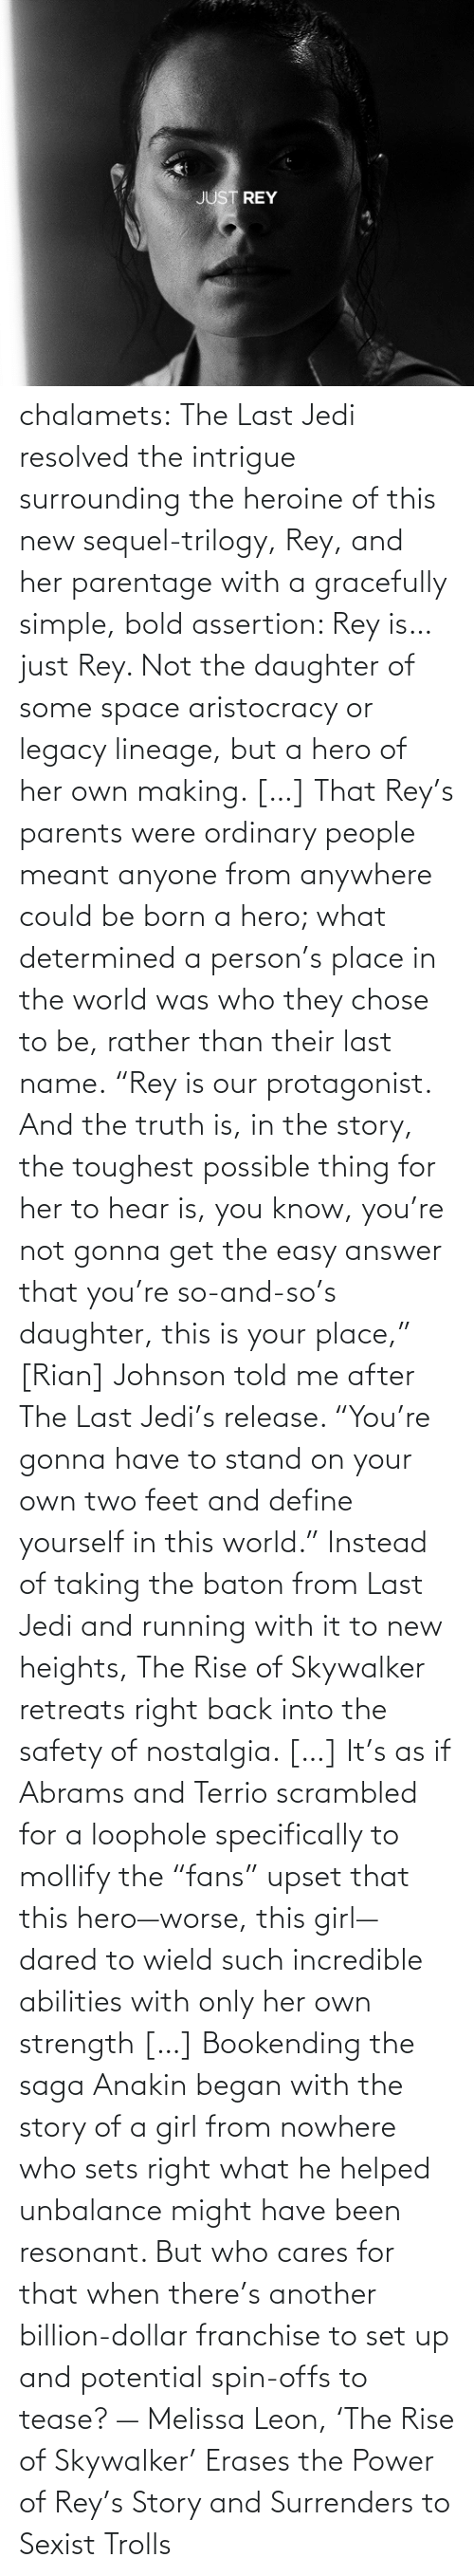 "simple: chalamets:  The Last Jedi resolved the intrigue surrounding the heroine of this new sequel-trilogy, Rey, and her parentage with a gracefully simple, bold assertion: Rey is… just Rey. Not the daughter of some space aristocracy or legacy lineage, but a hero of her own making. […] That Rey's parents were ordinary people meant anyone from anywhere could be born a hero; what determined a person's place in the world was who they chose to be, rather than their last name. ""Rey is our protagonist. And the truth is, in the story, the toughest possible thing for her to hear is, you know, you're not gonna get the easy answer that you're so-and-so's daughter, this is your place,"" [Rian] Johnson told me after The Last Jedi's release. ""You're gonna have to stand on your own two feet and define yourself in this world."" Instead of taking the baton from Last Jedi and running with it to new heights, The Rise of Skywalker retreats right back into the safety of nostalgia. […] It's as if Abrams and Terrio scrambled for a loophole specifically to mollify the ""fans"" upset that this hero—worse, this girl—dared to wield such incredible abilities with only her own strength […] Bookending the saga Anakin began with the story of a girl from nowhere who sets right what he helped unbalance might have been resonant. But who cares for that when there's another billion-dollar franchise to set up and potential spin-offs to tease? — Melissa Leon, 'The Rise of Skywalker' Erases the Power of Rey's Story and Surrenders to Sexist Trolls"